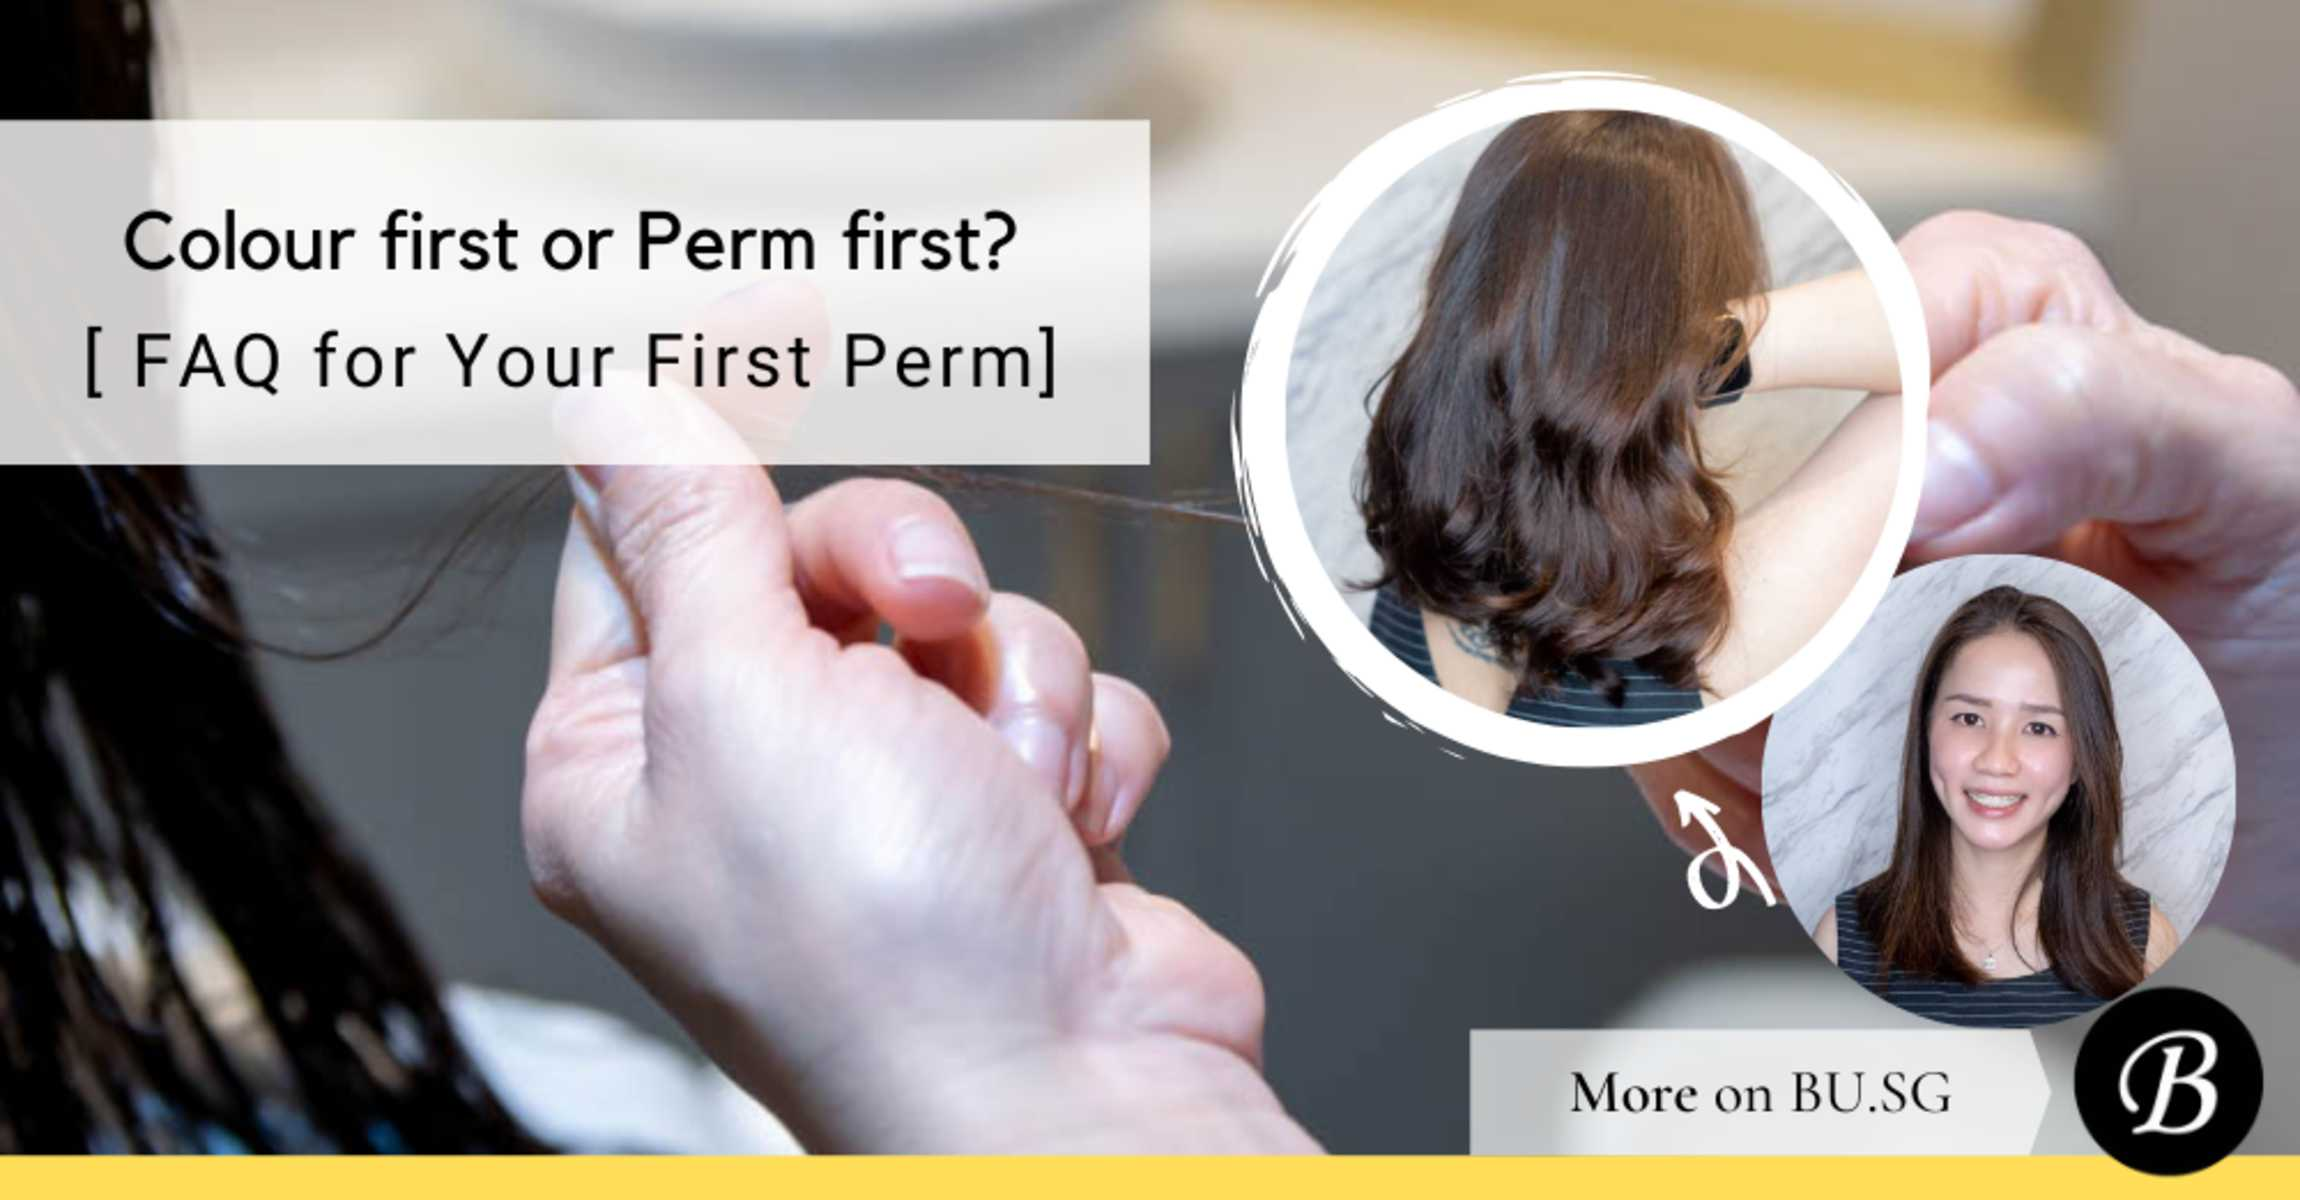 Perm First or Colour First? 7 Other FAQ for a Gorgeous First Perm!